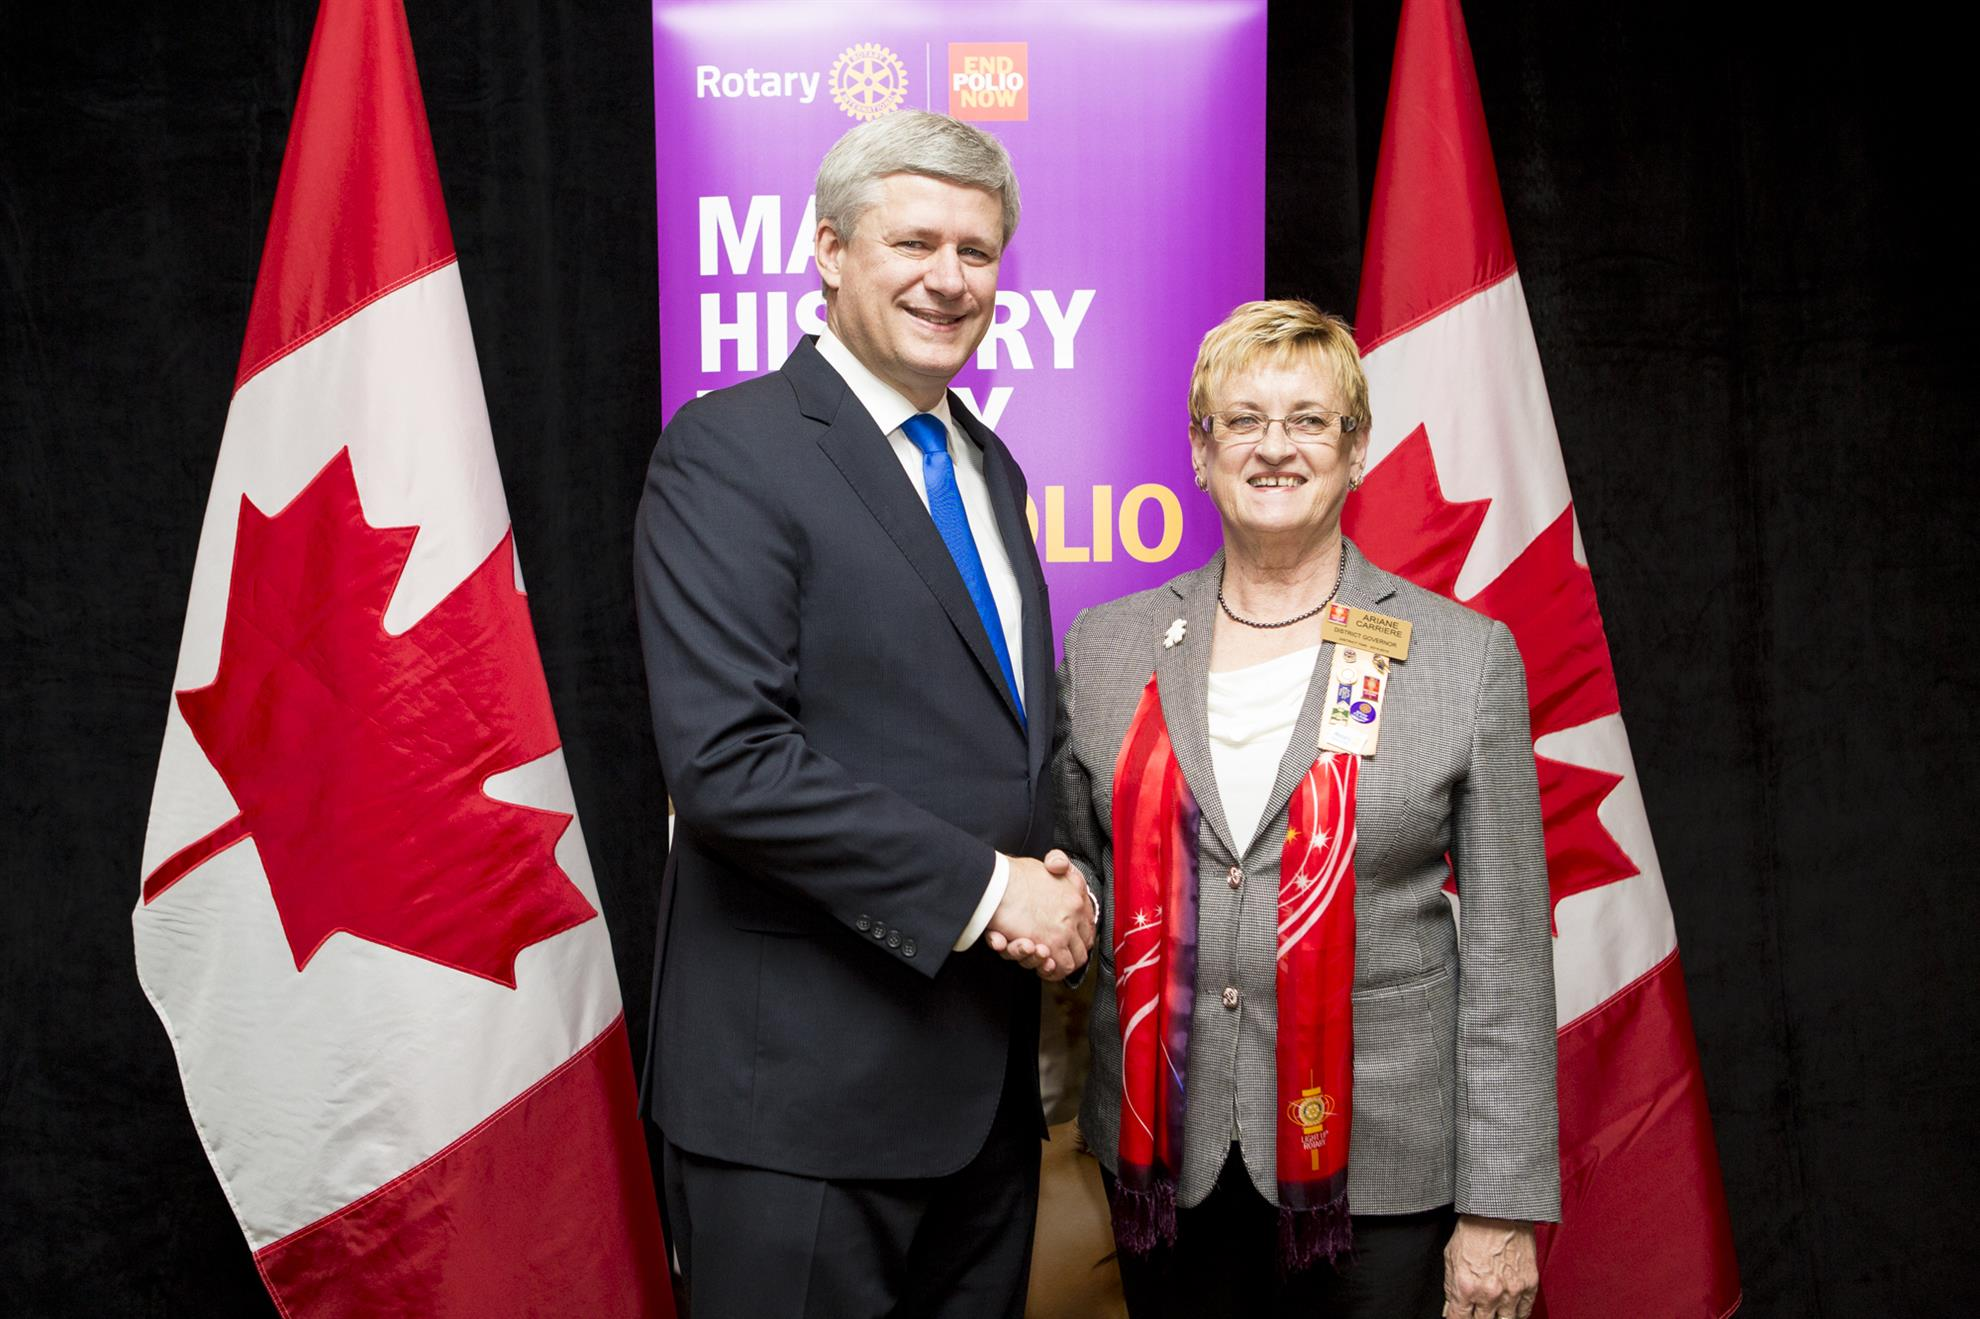 PM Stephen Harper and District Governor Arriane Carriere